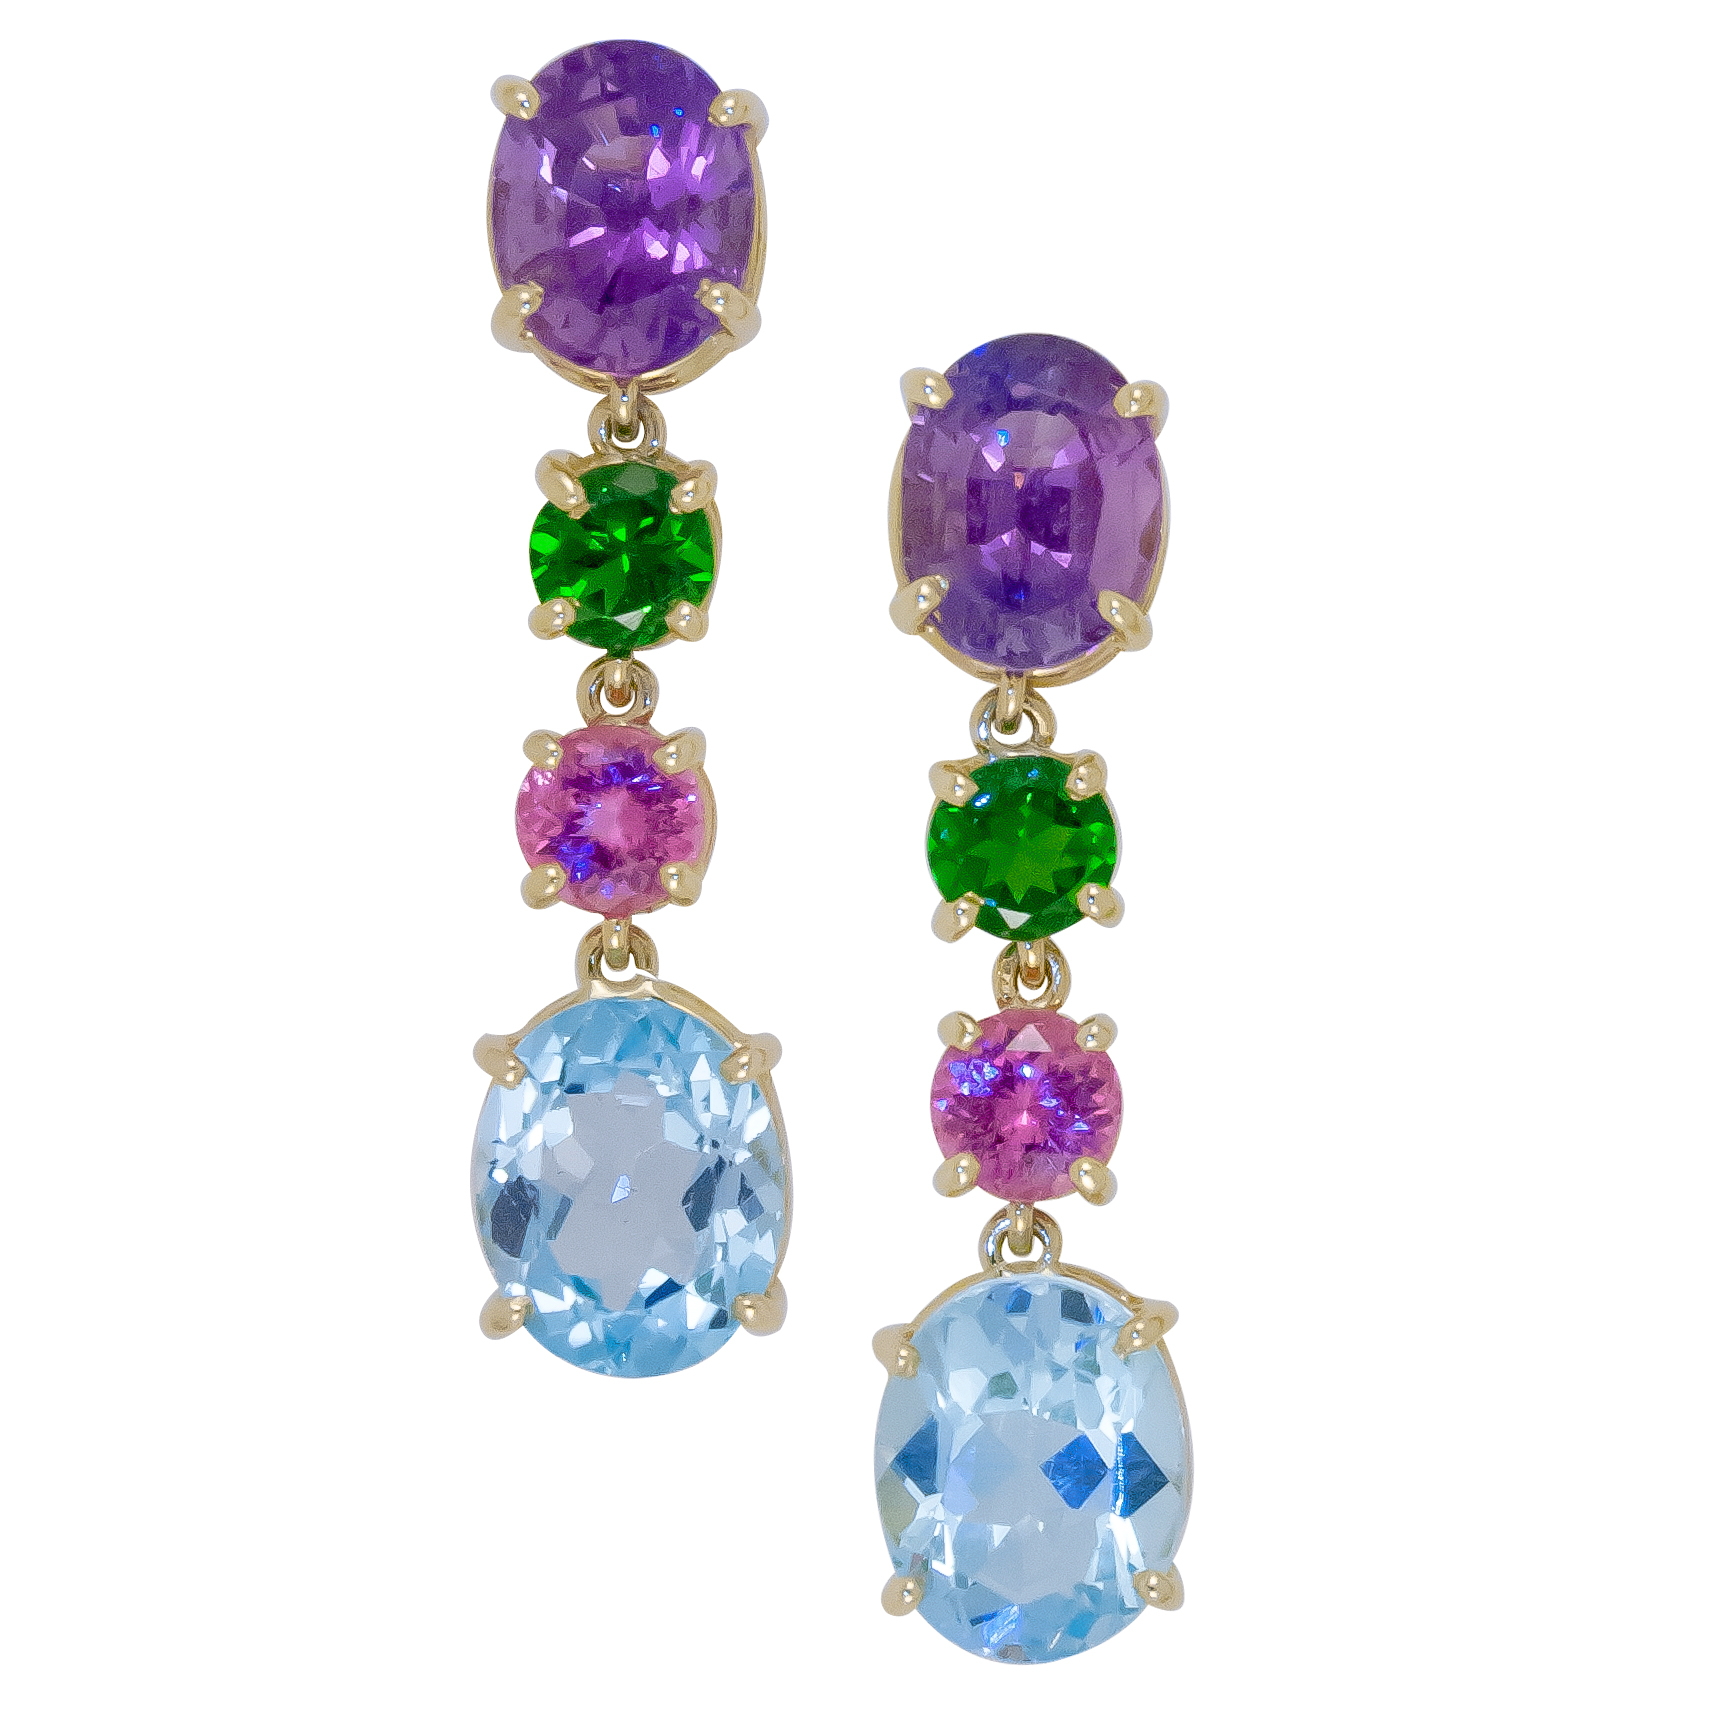 Topaz Tourmaline And Amethyst Earrings